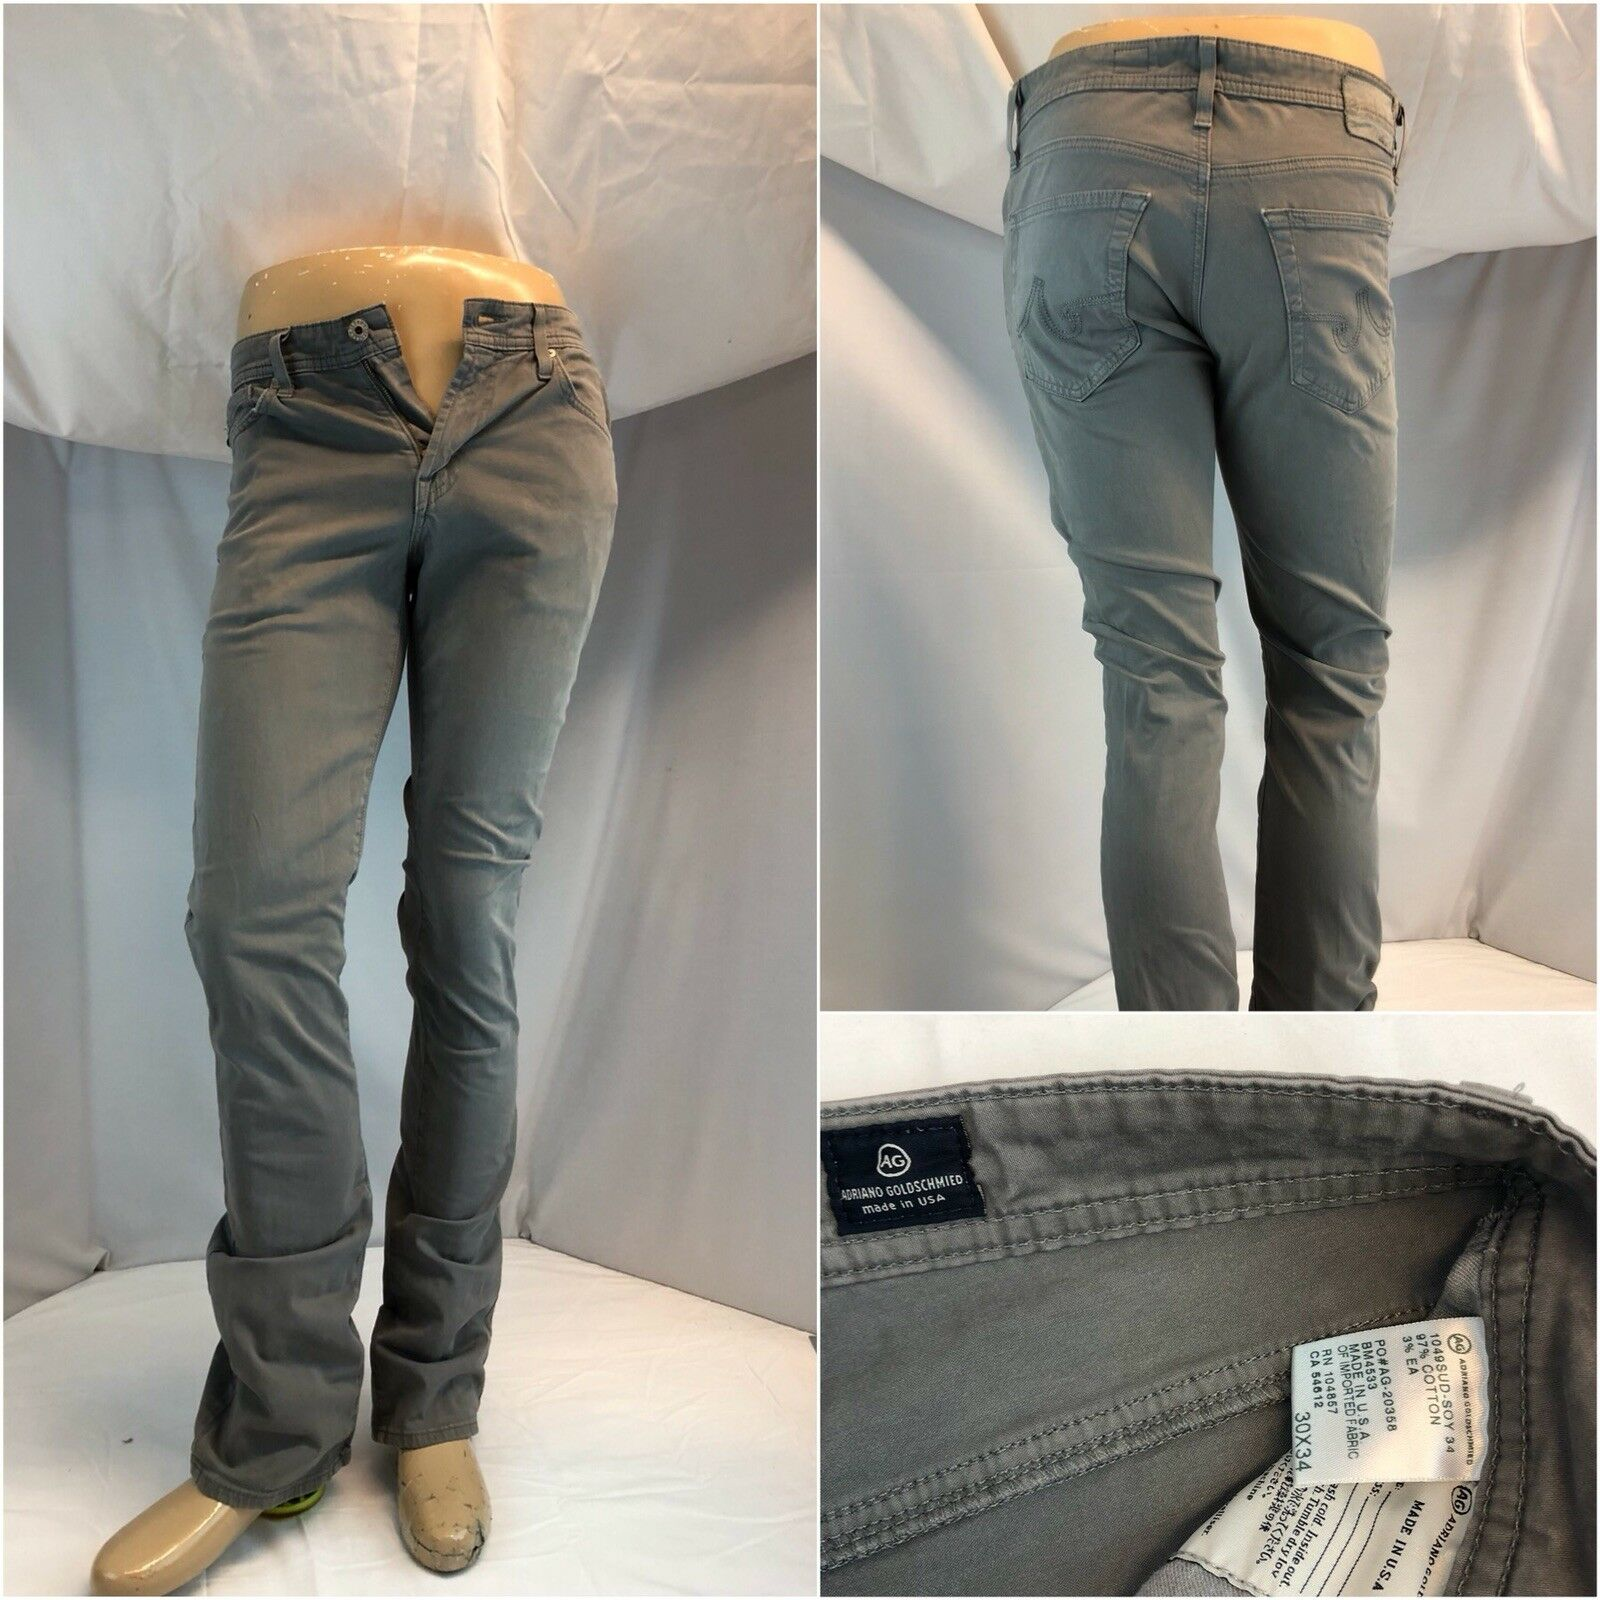 Adriano goldschmied Jeans Pants 30x34 Grey Cotton Lycra Excellent YGI F7073